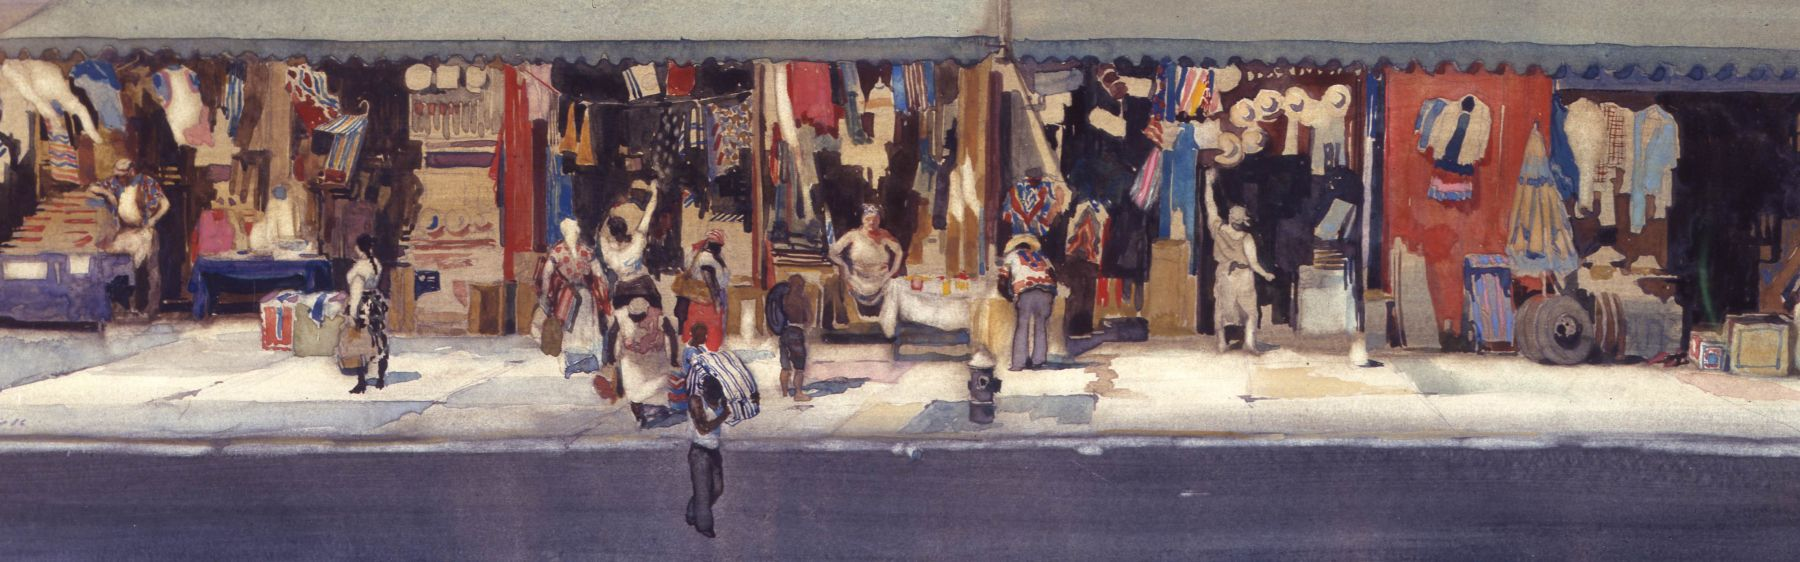 david levine, Delancey at Coney, 1986 watercolor on paper 7 1/2 x 22 1/2 inches, Private collection, West Orange, NJ